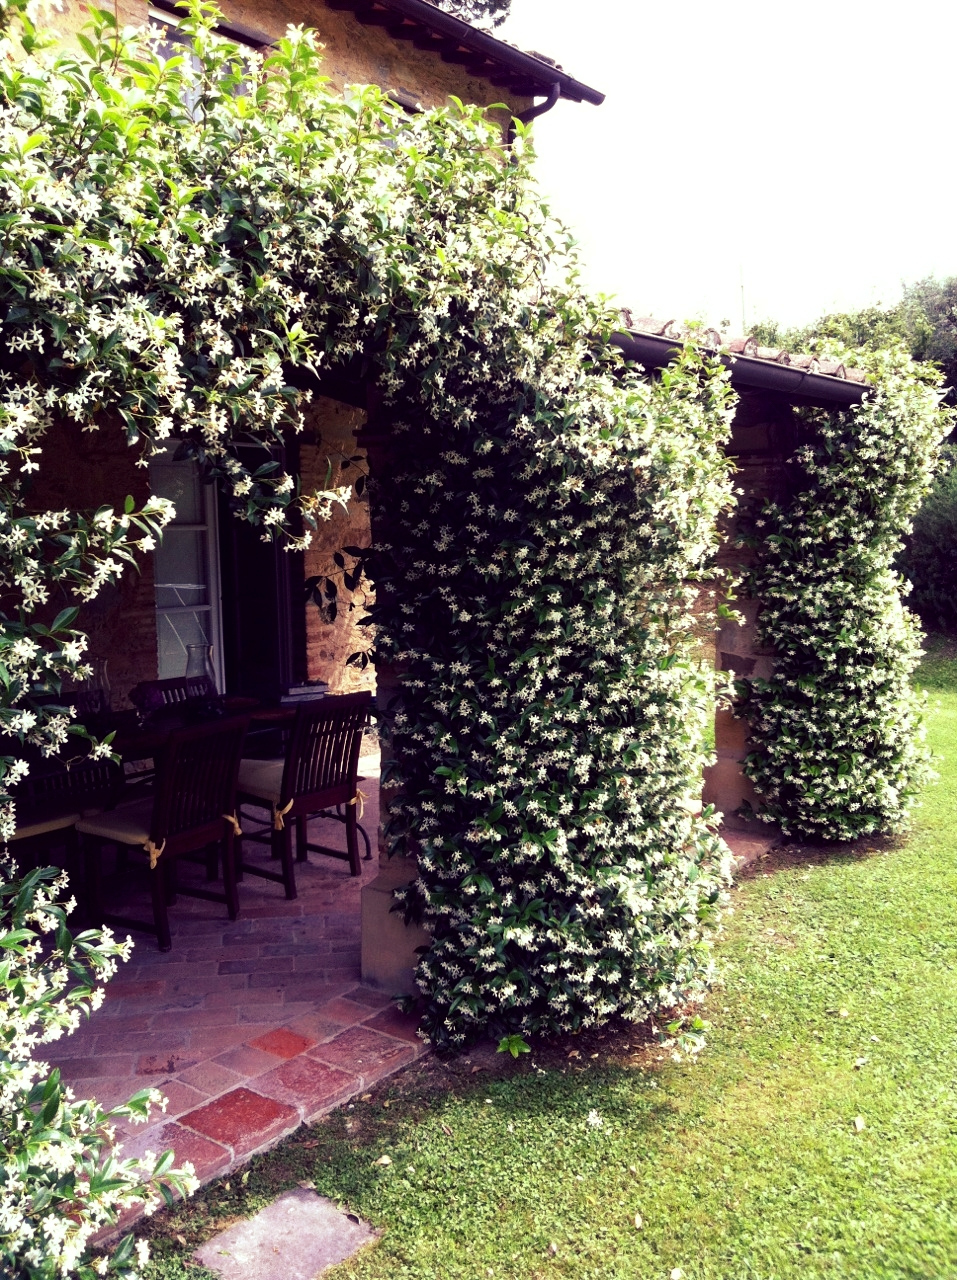 Jasmine blooms on the portico just outside the kitchen facing west. The smell is amazing!